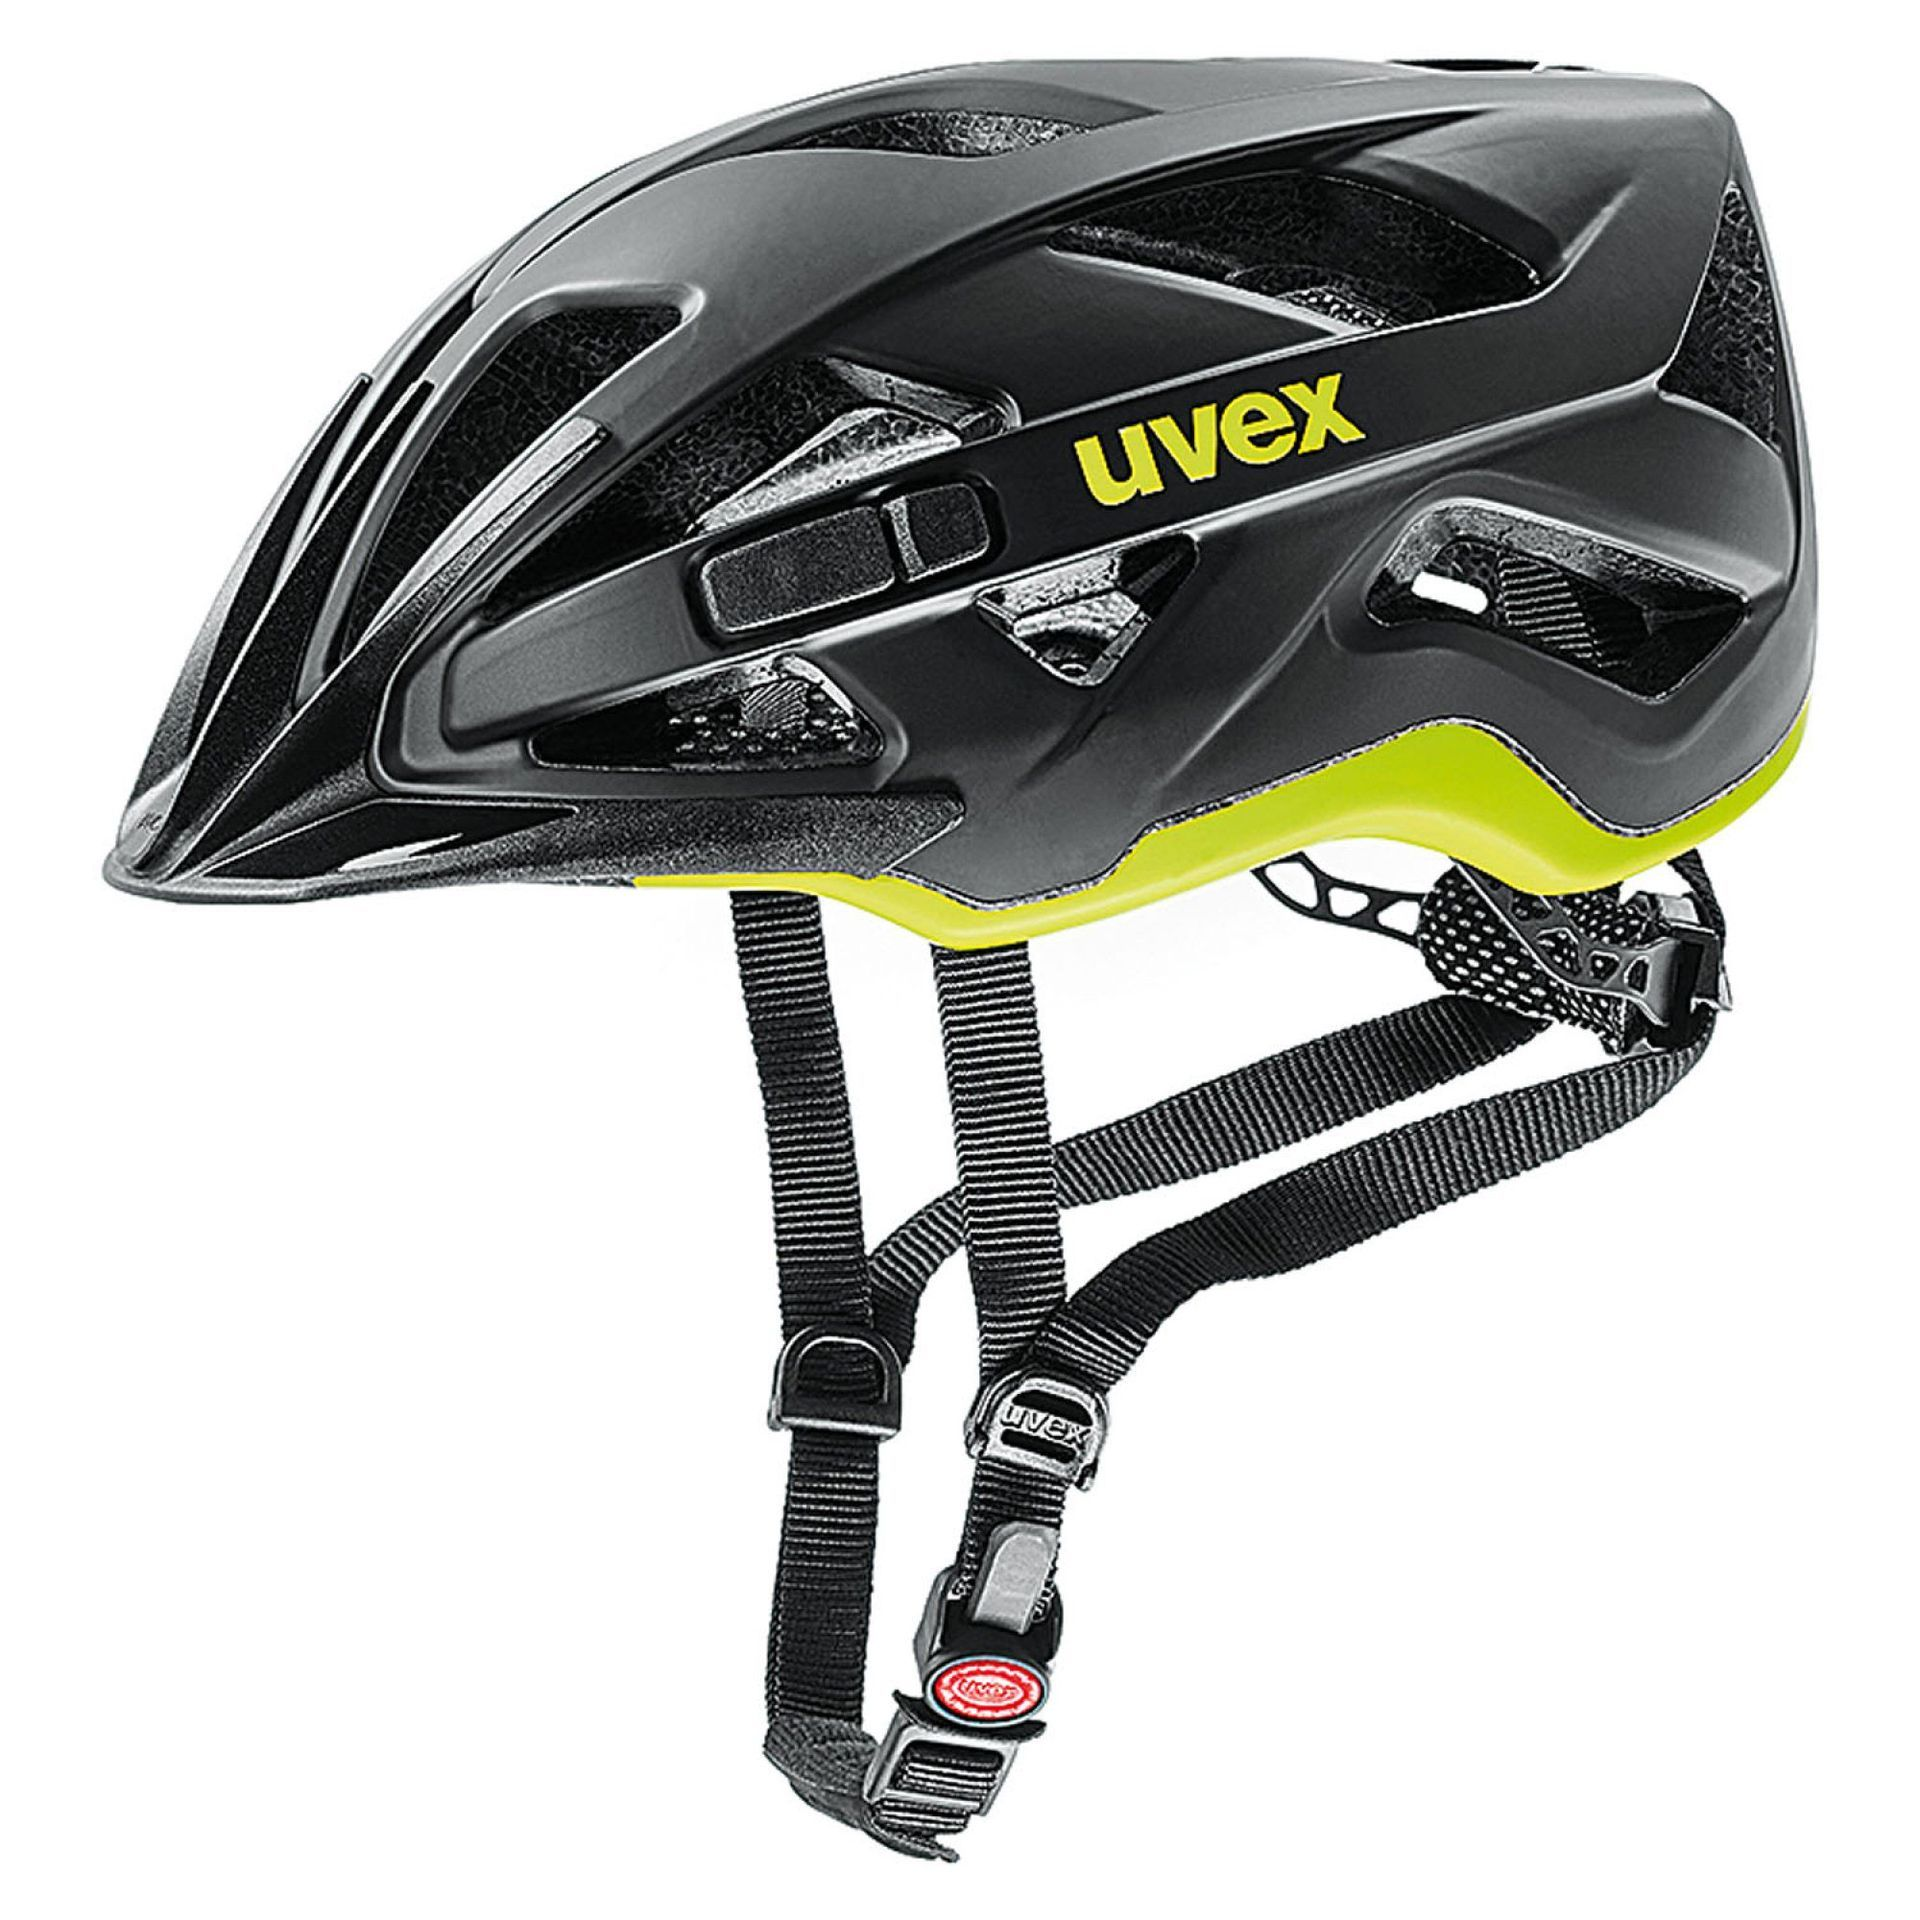 KASK ROWEROWY UVEX ACTIVE CC BLACK YELLOW MAT